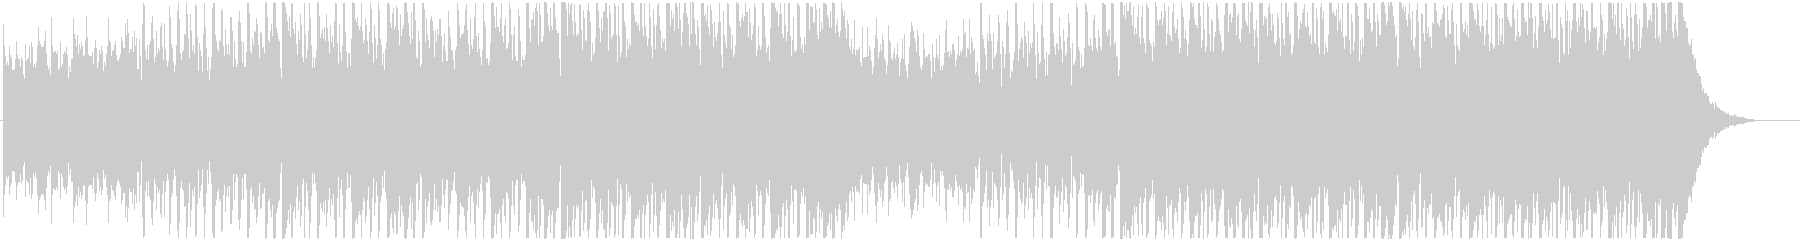 BGM for web advertising with a friendly atmosphere's unreproduced waveform